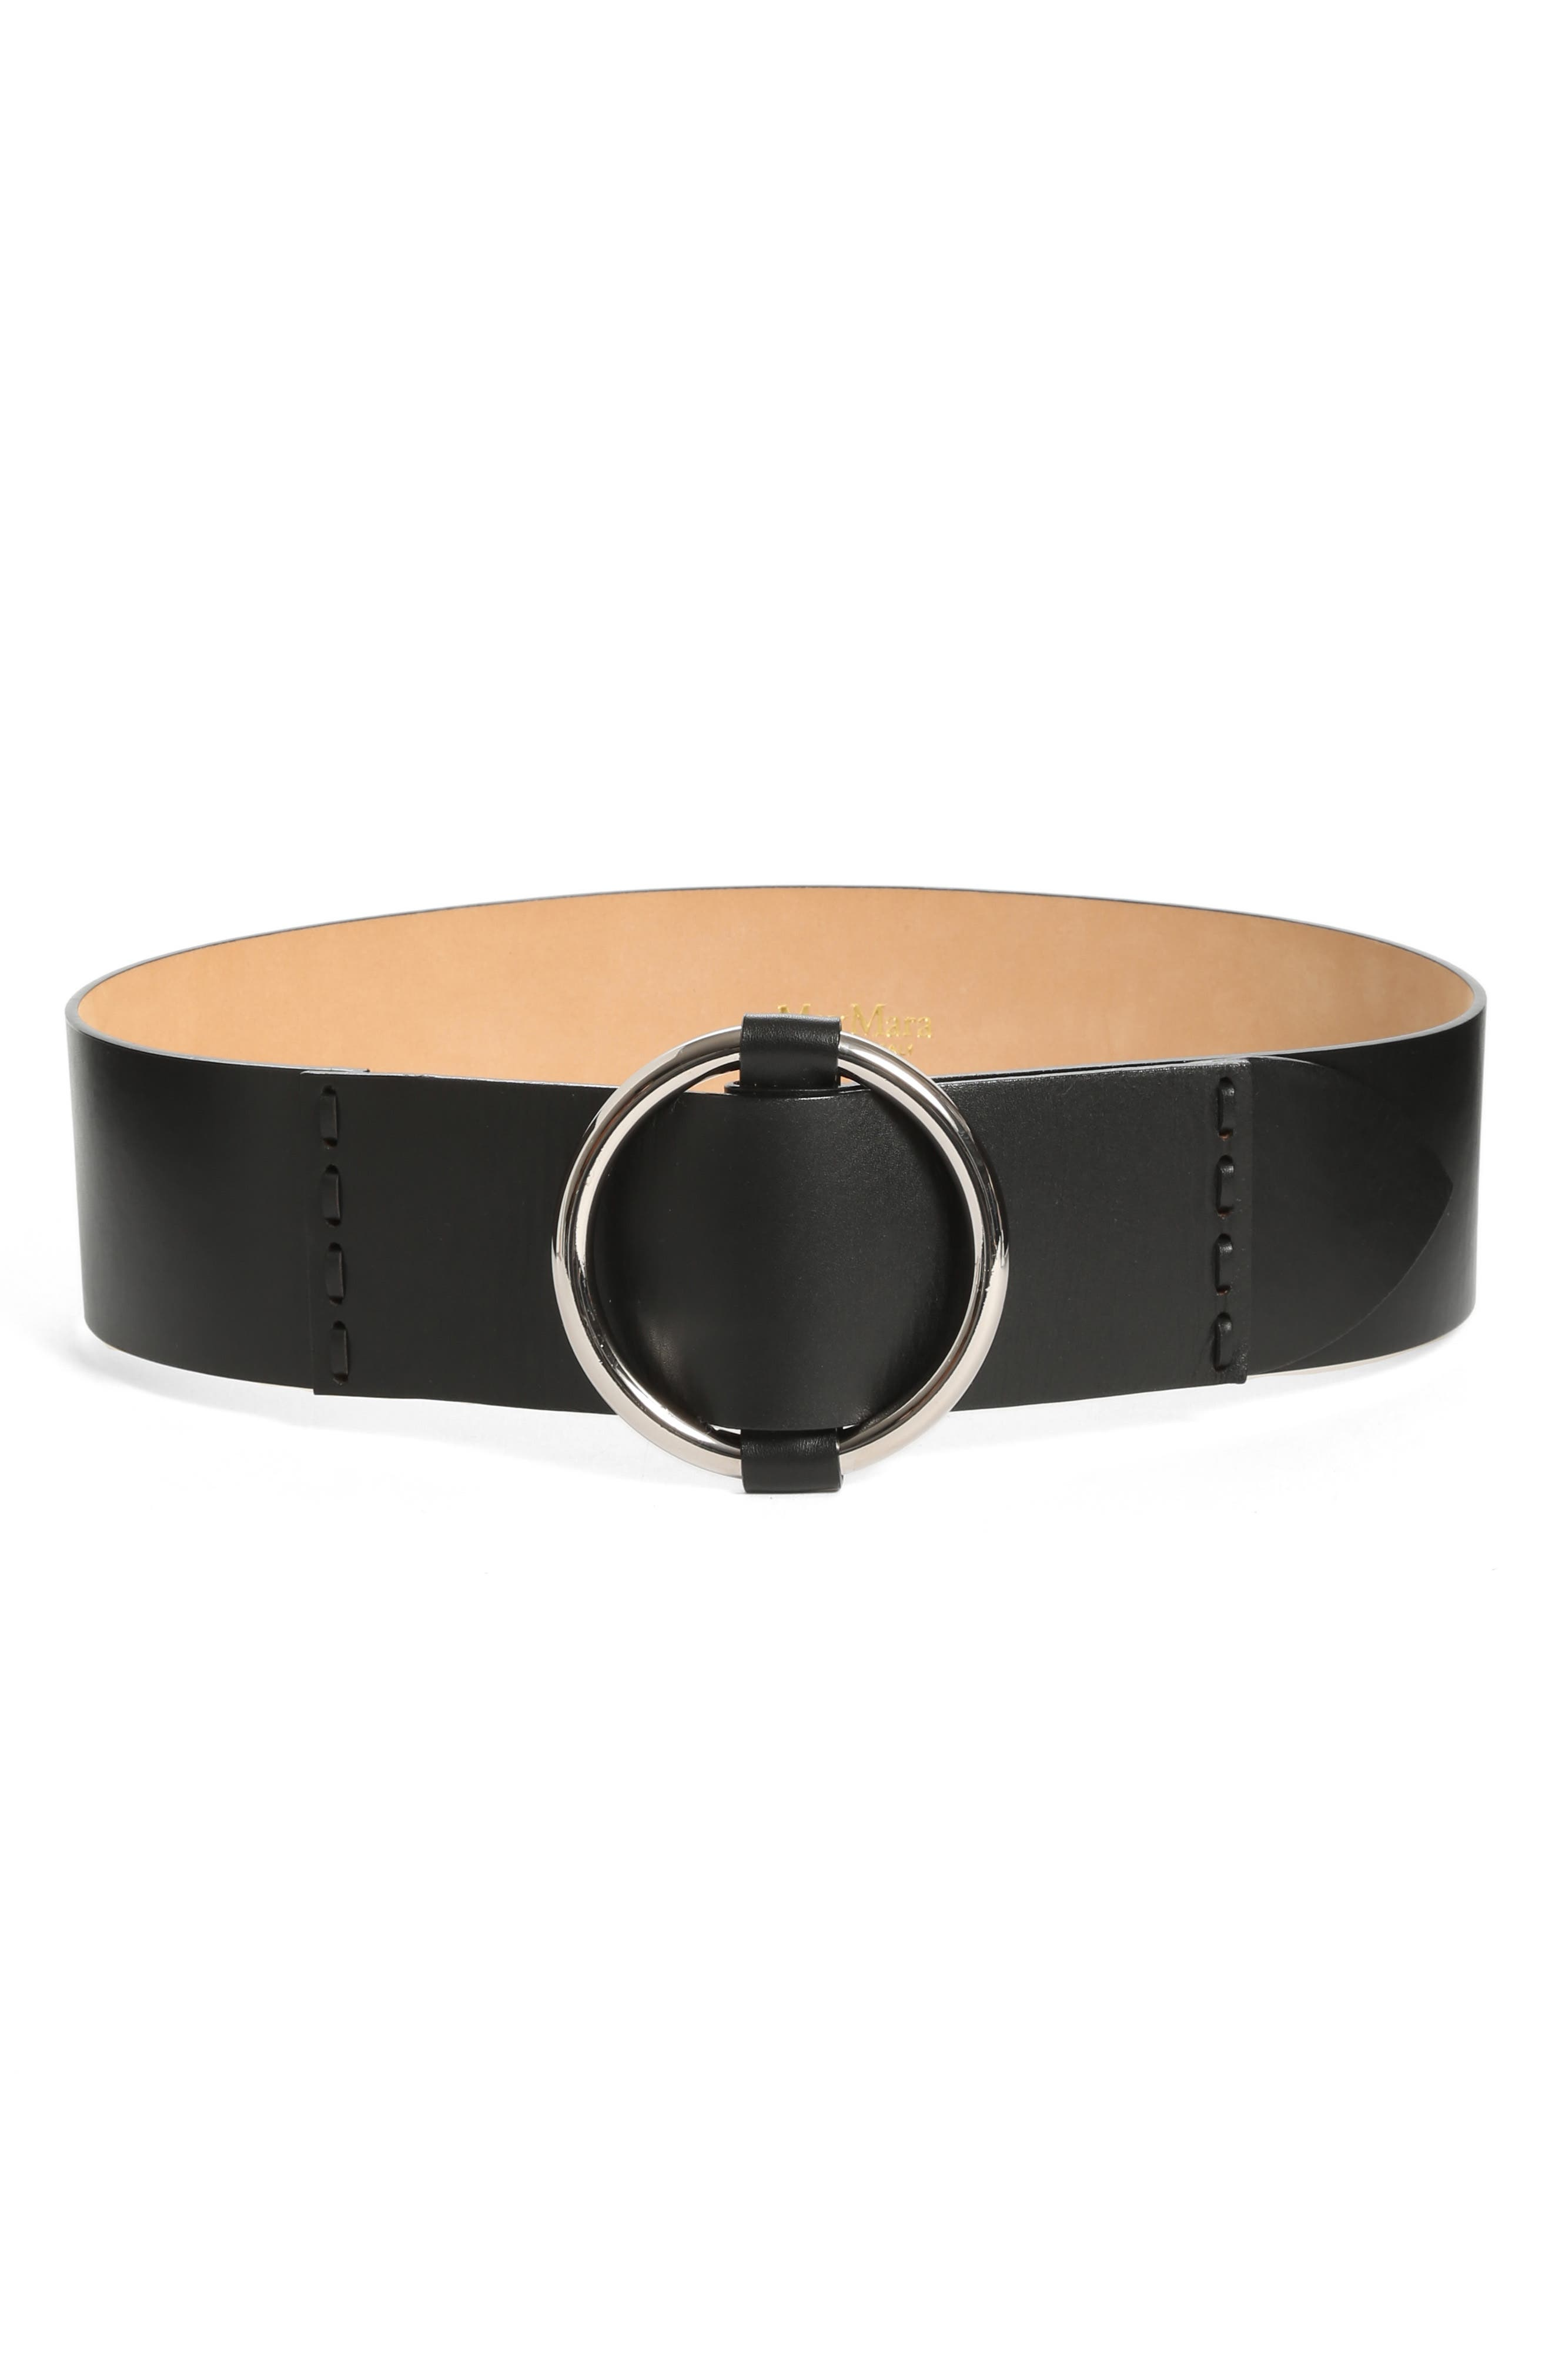 Curt Circle Buckle Leather Belt, Main, color, 001